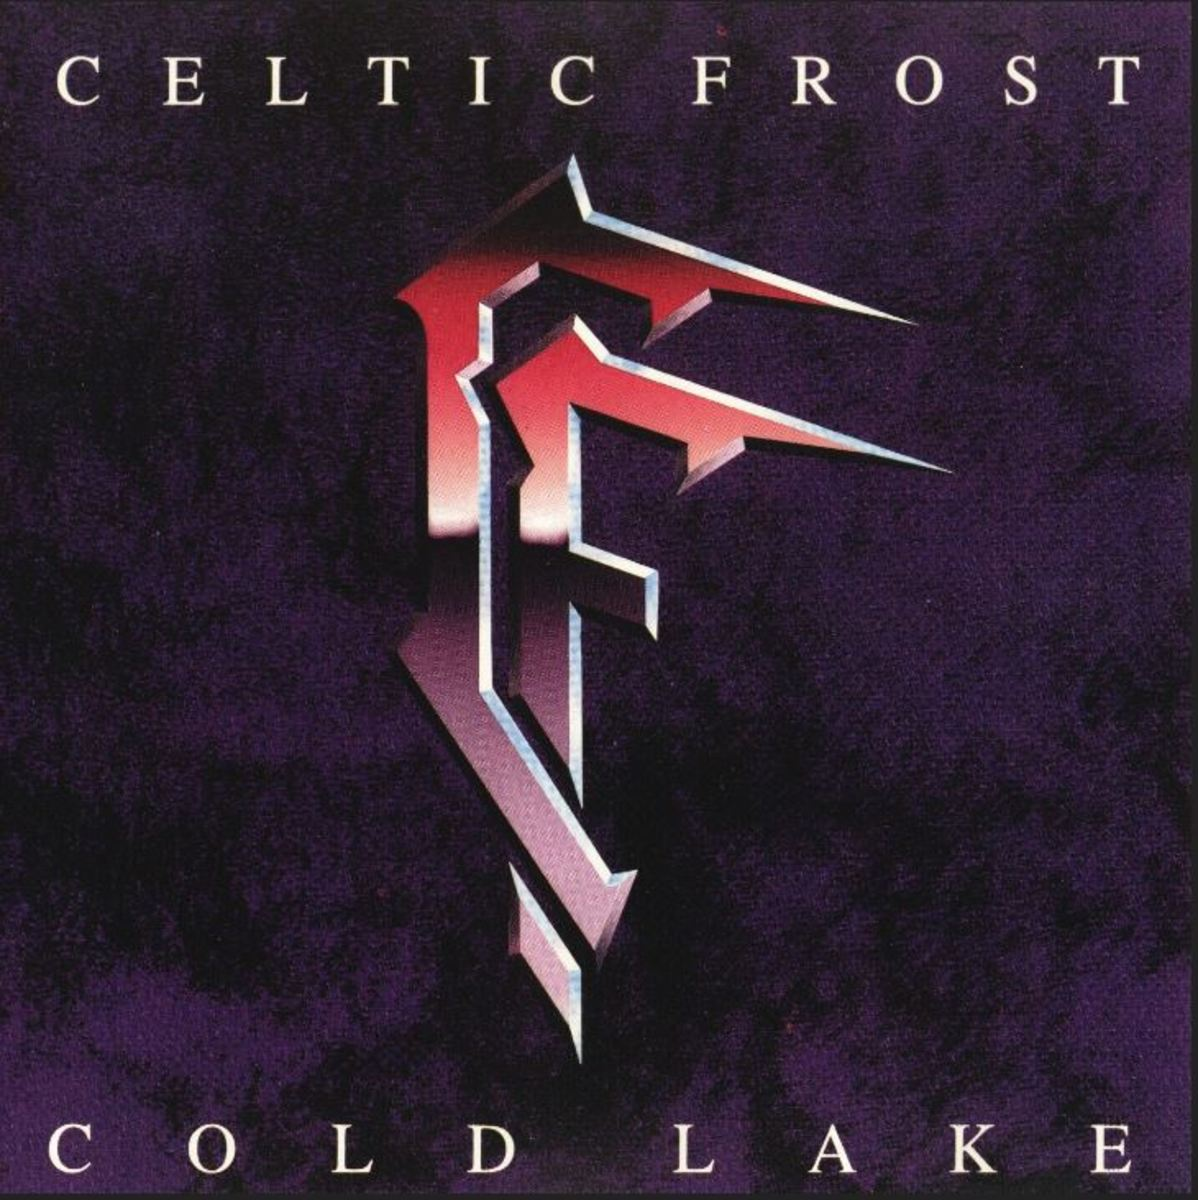 Forgotten Hard Rock Albums: Celtic Frost's